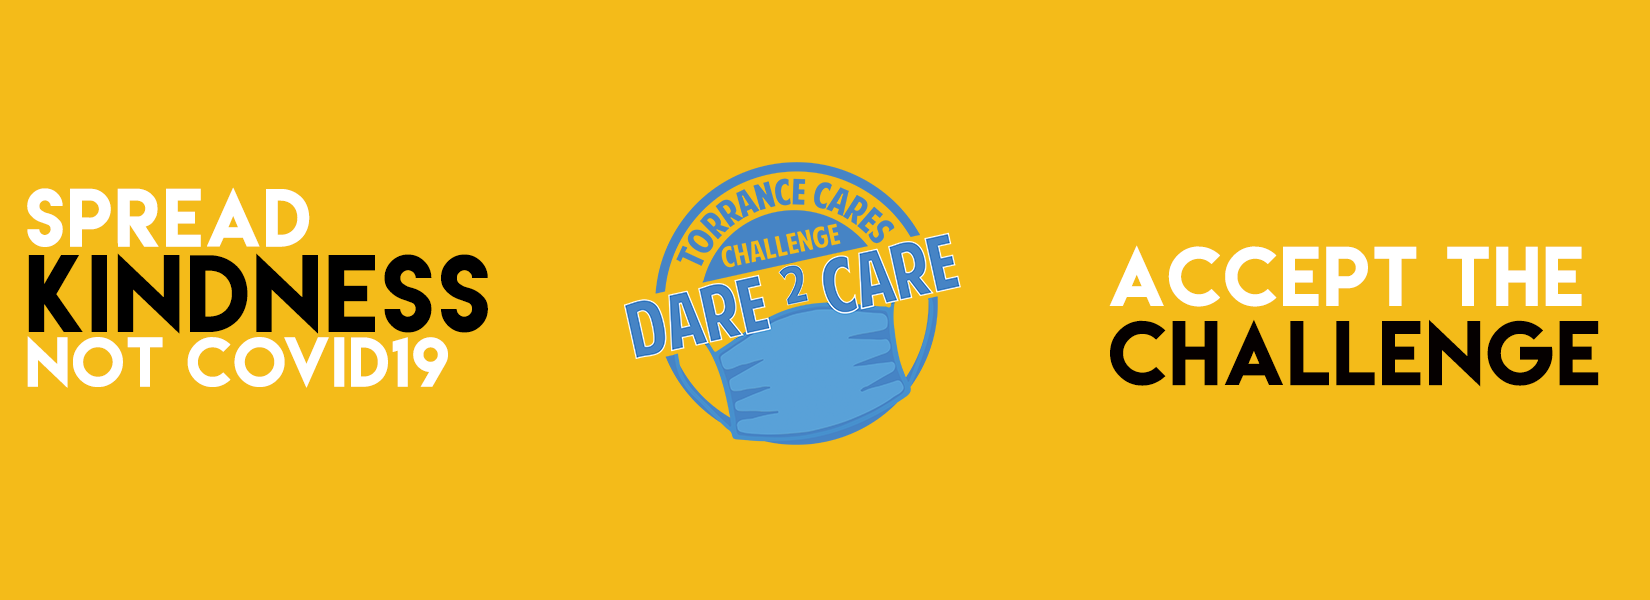 dare 2 care hero